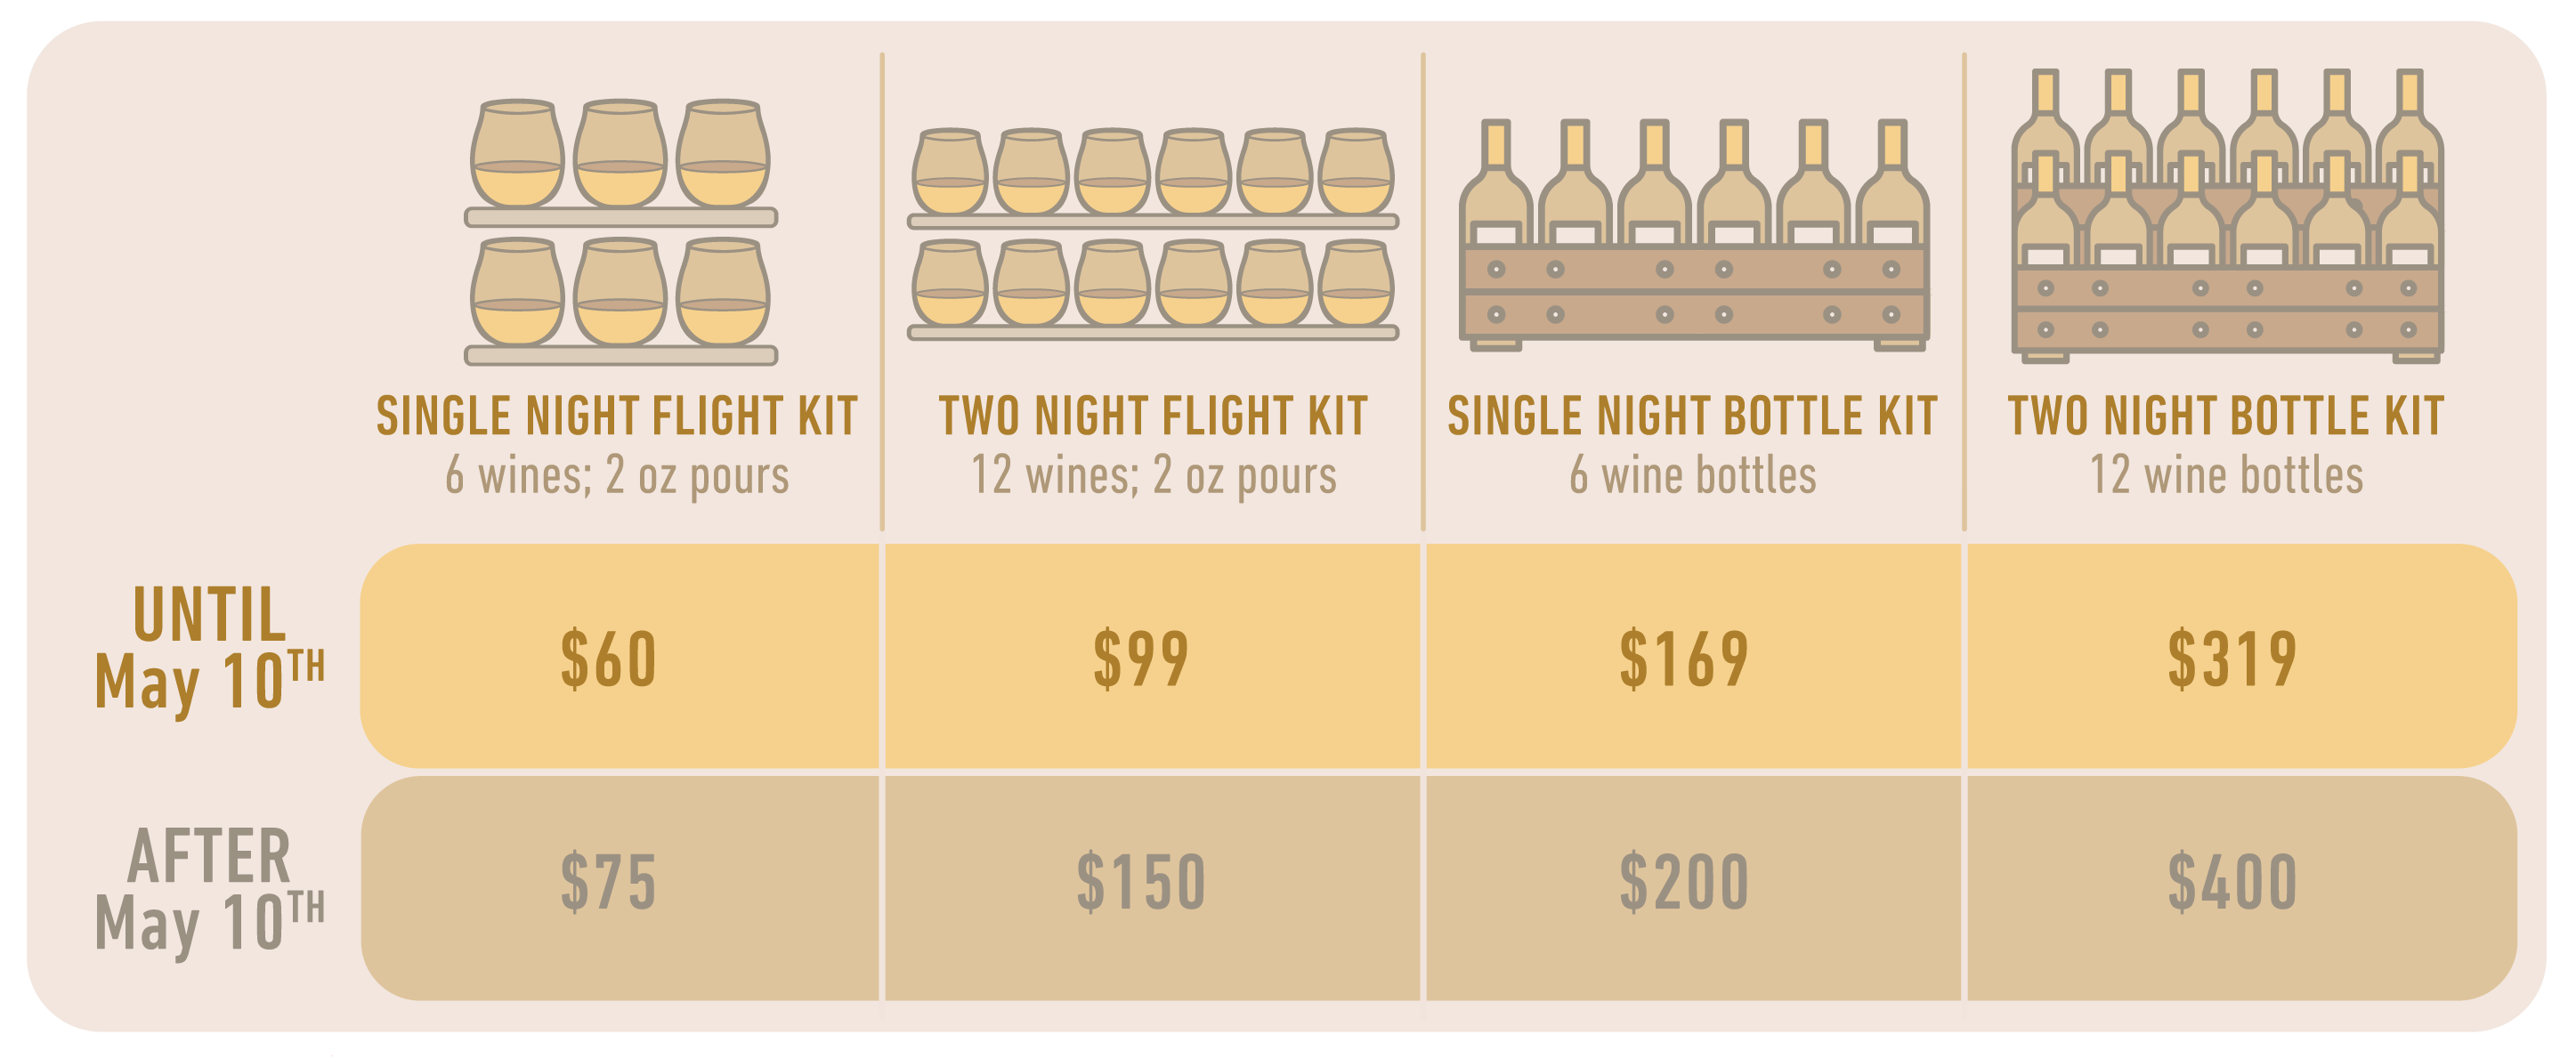 STARS of White Wine Pricing Graphic Image on Learnaboutwine.com